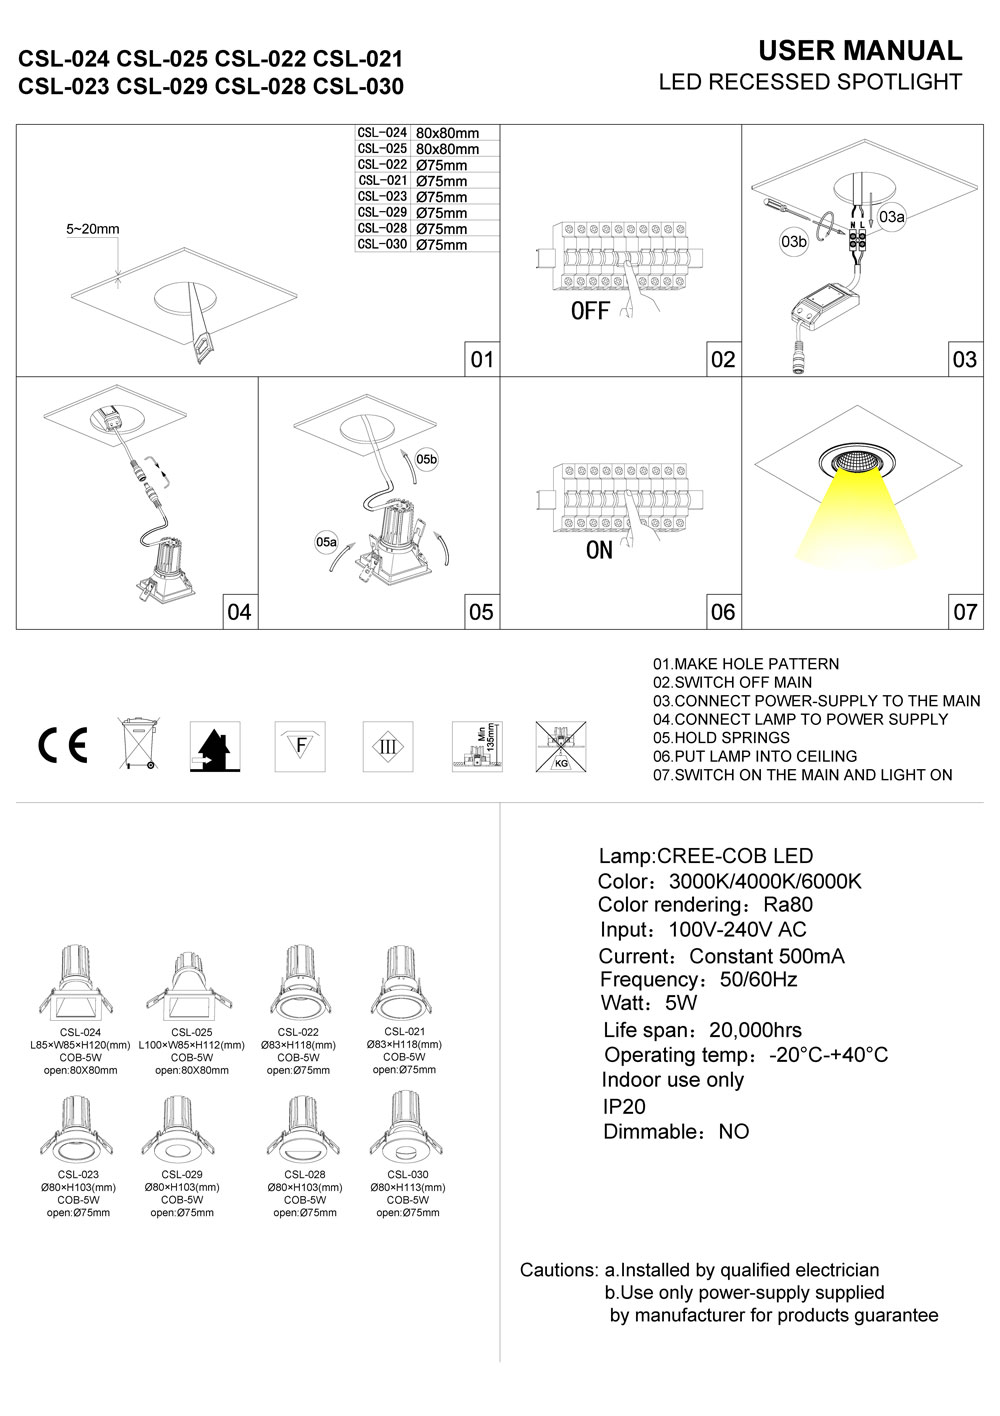 csl024 csl022 LED downlight installation guide